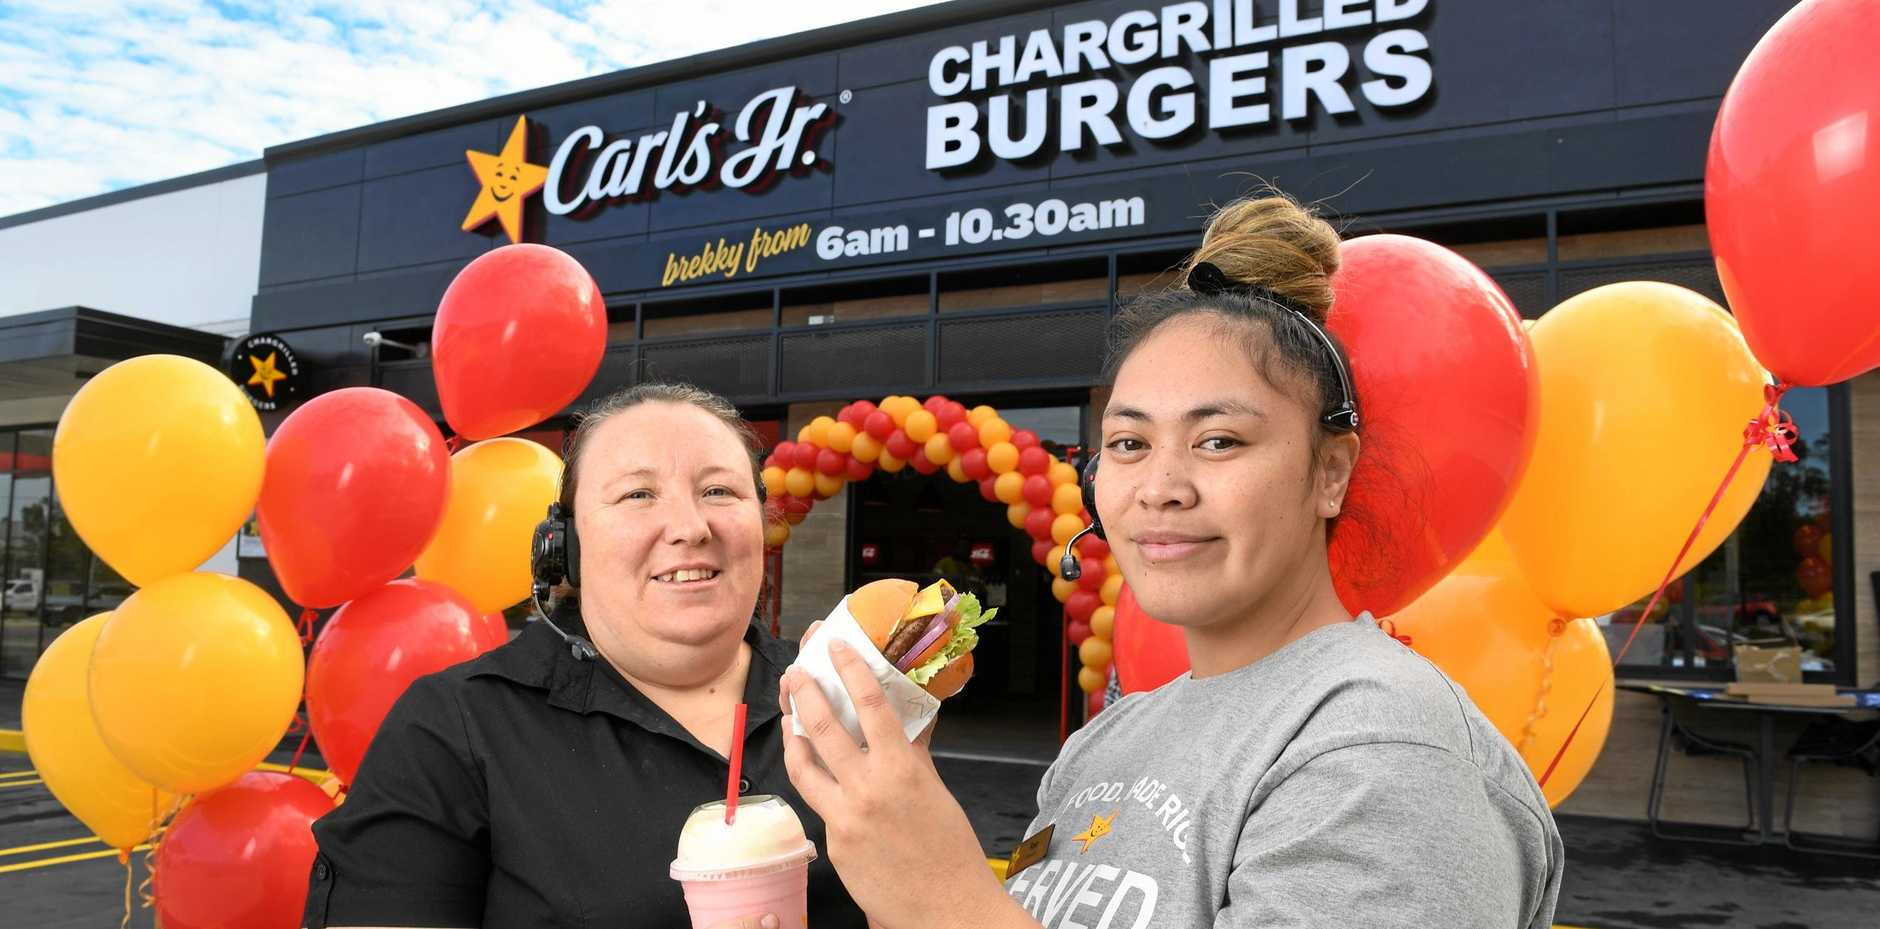 Carl's Jr has opened in Riverview. Managers Diane Simmons and Rose Mananu.